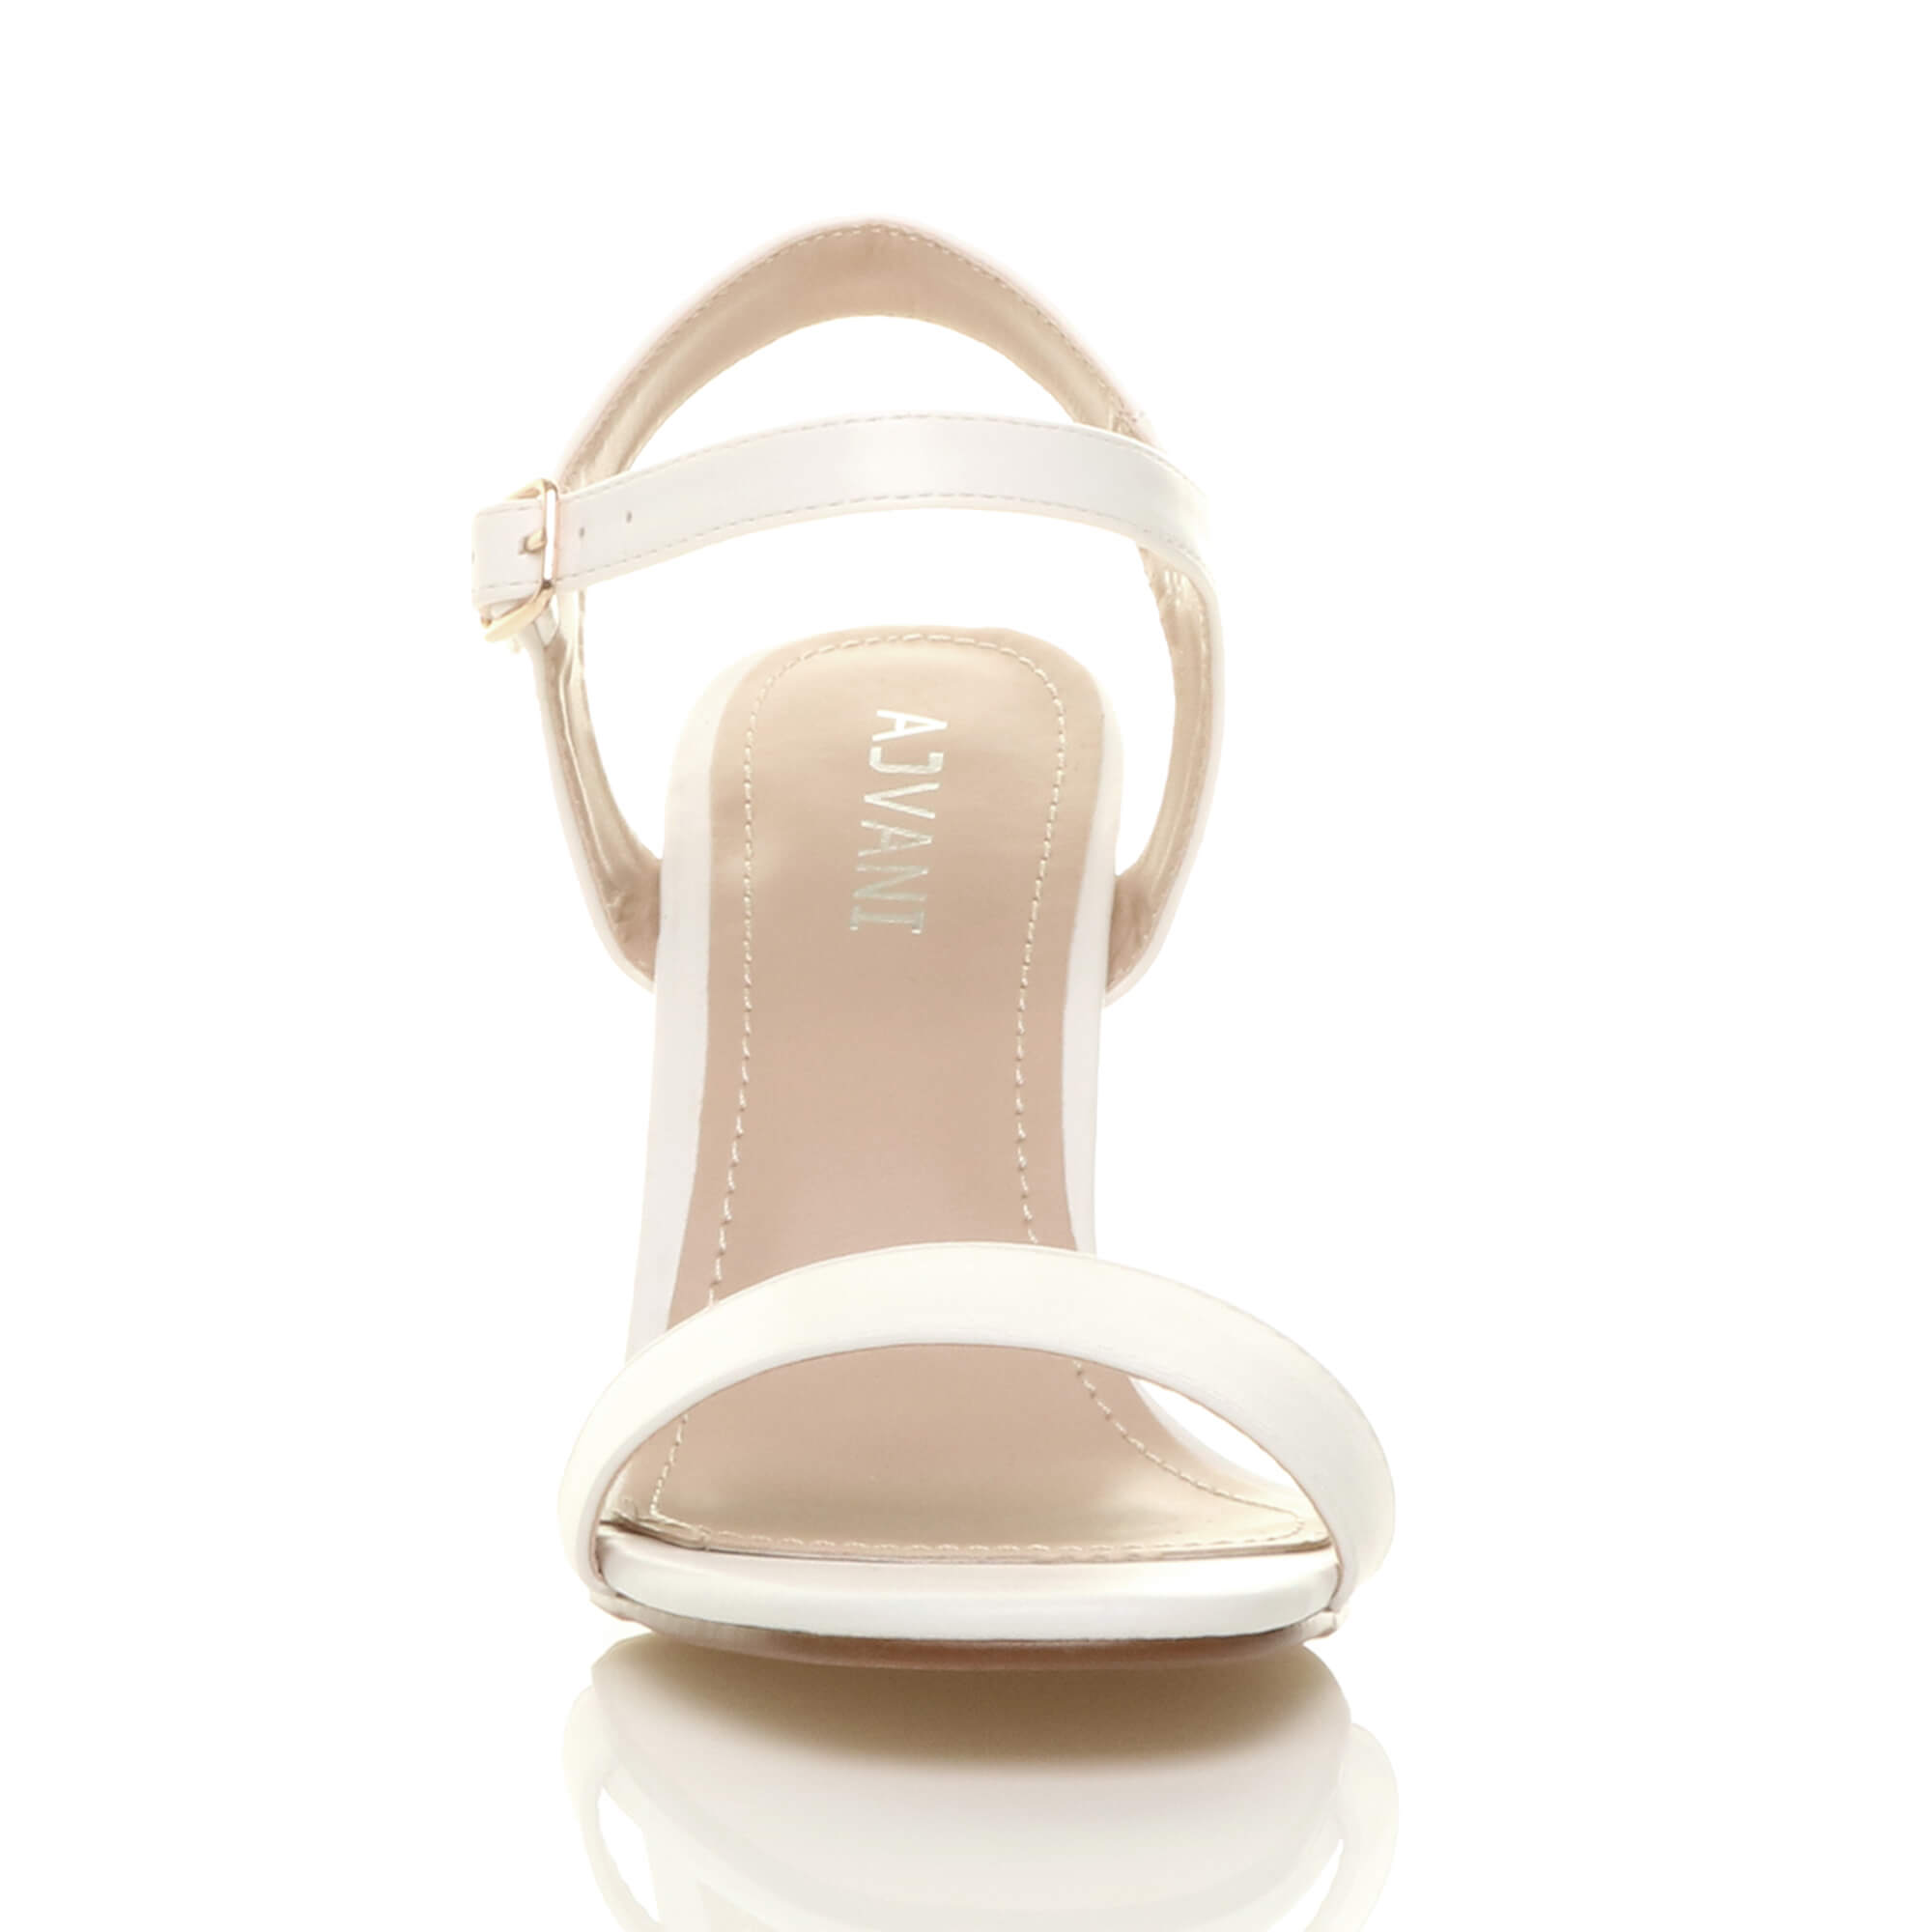 WOMENS-LADIES-HIGH-HEEL-BUCKLE-STRAPPY-BASIC-BARELY-THERE-SANDALS-SHOES-SIZE thumbnail 146